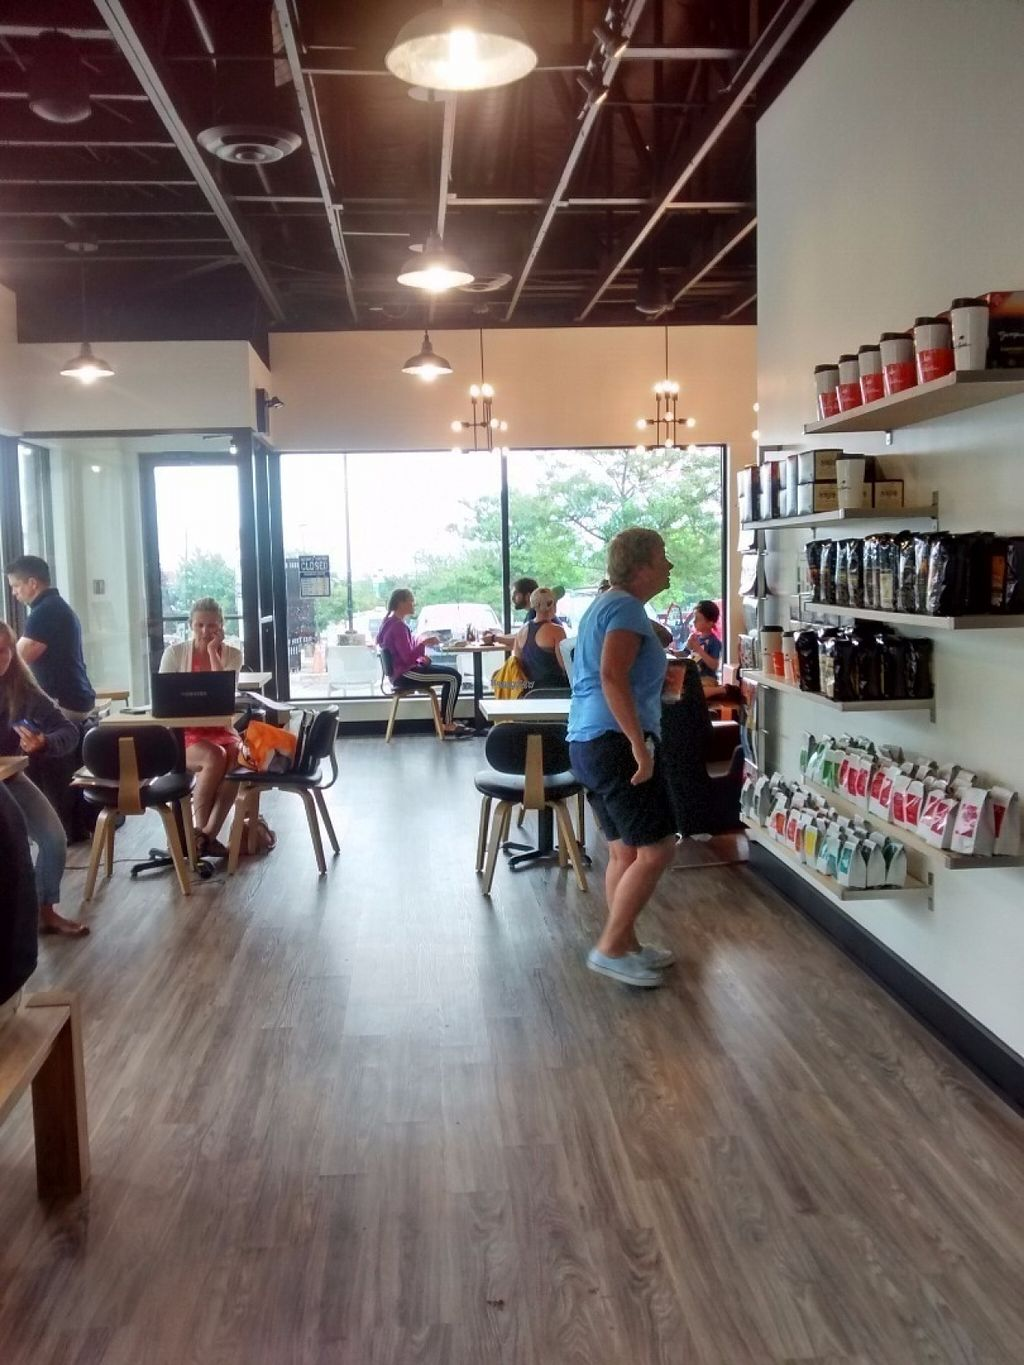 """Photo of The Nook Espresso Bar and Lounge  by <a href=""""/members/profile/QuothTheRaven"""">QuothTheRaven</a> <br/>Inside <br/> August 18, 2016  - <a href='/contact/abuse/image/78554/169619'>Report</a>"""